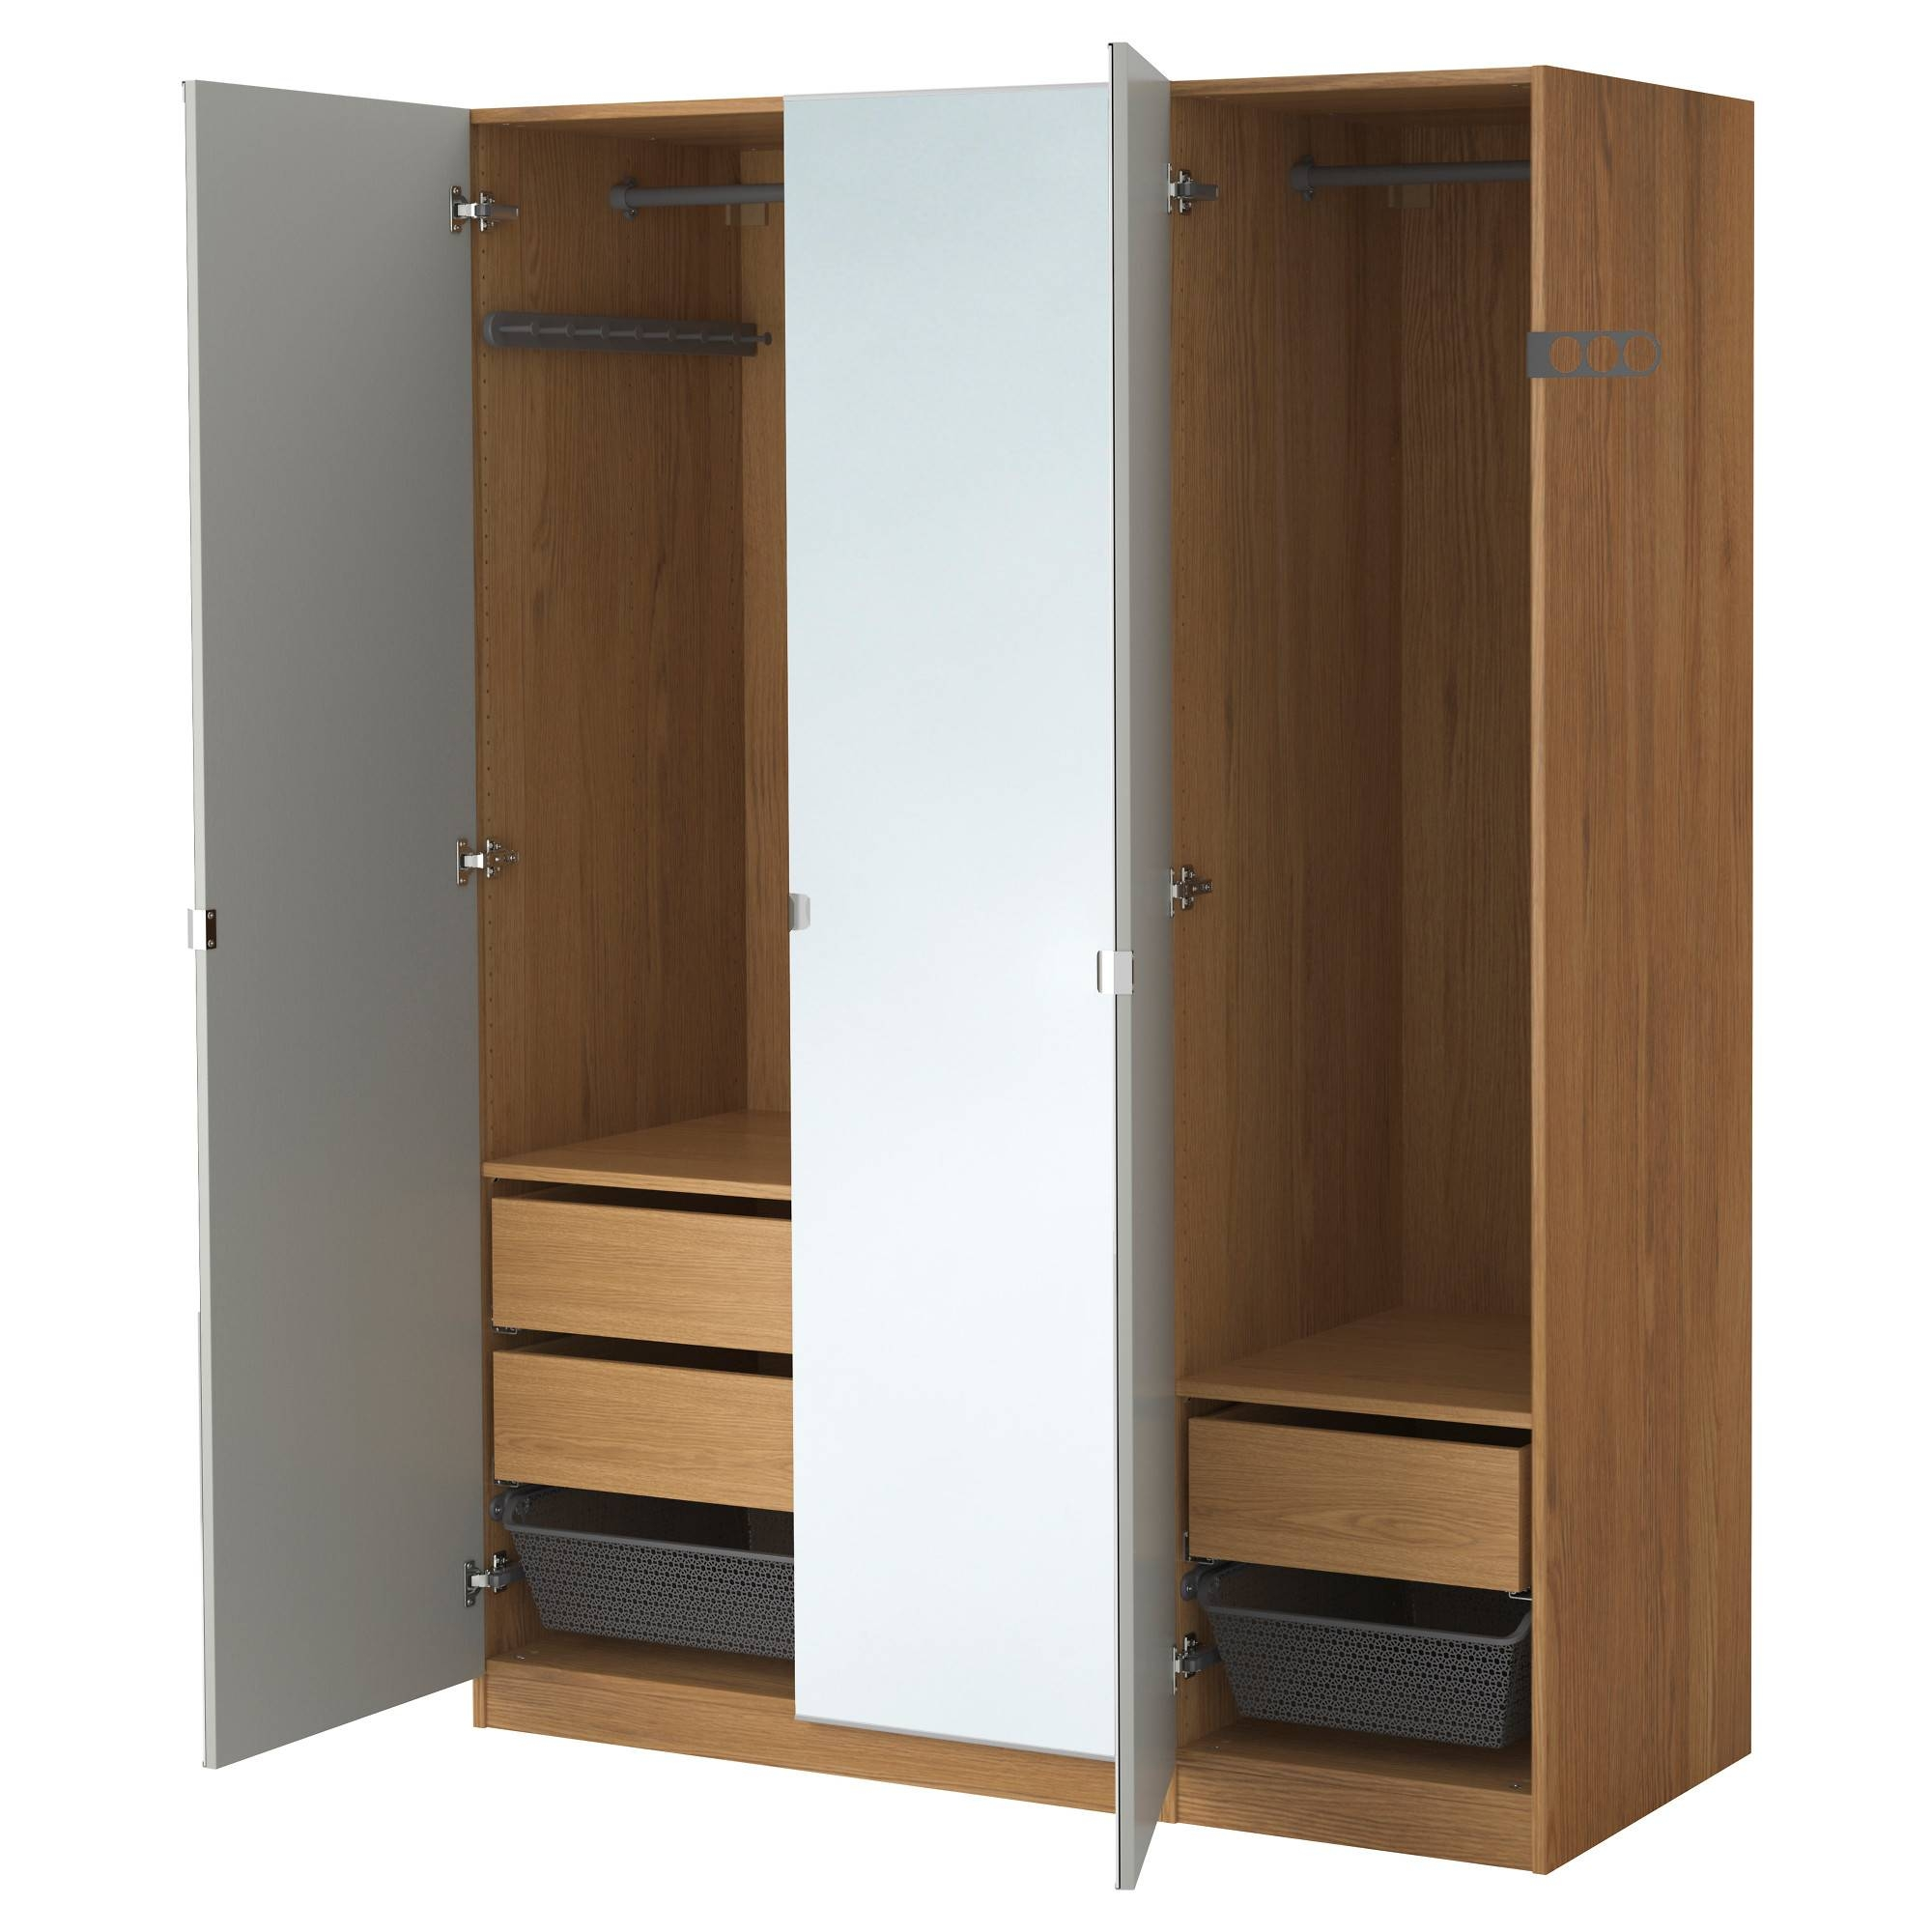 Wardrobes | Ikea throughout Single White Wardrobes With Mirror (Image 13 of 15)